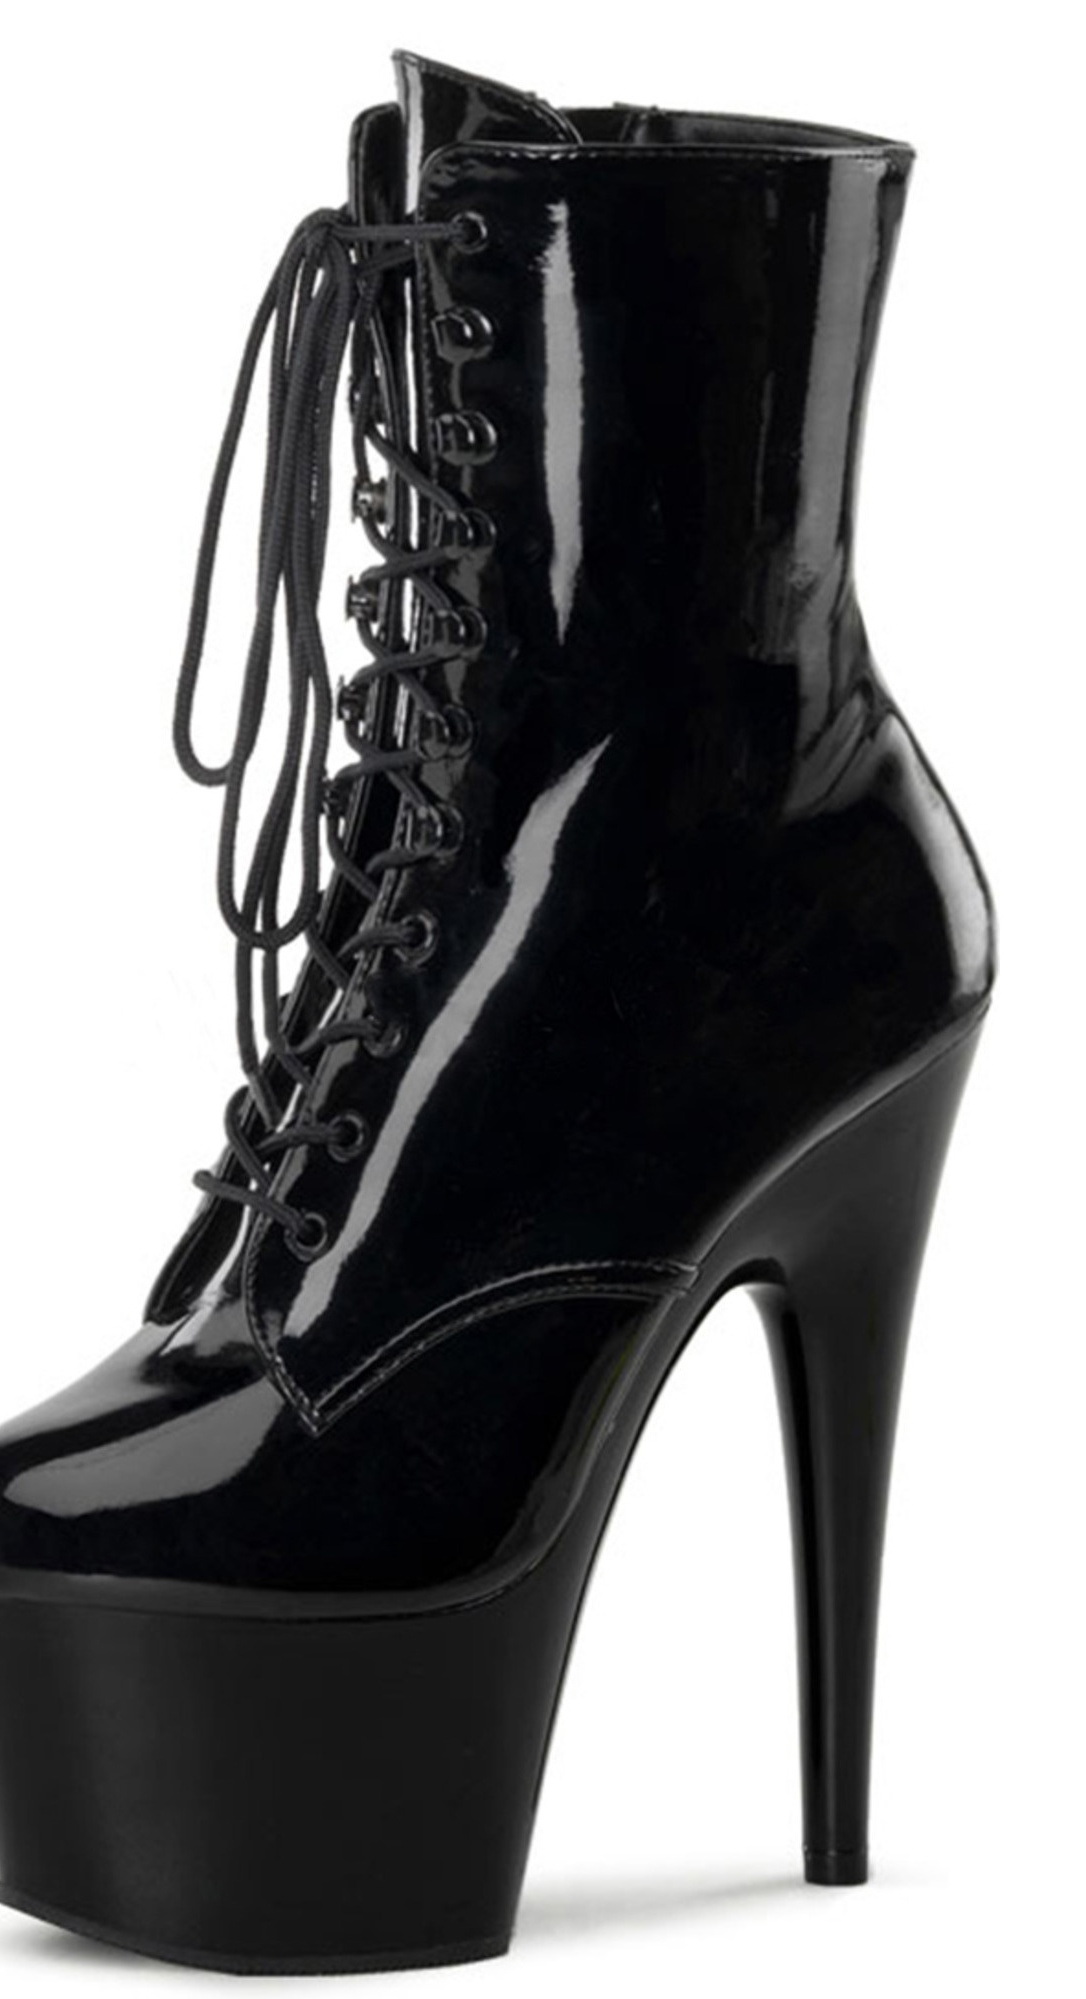 Lace Up Shiny Black Ankle Boots 7 Inch Stiletto Heel and 2.75 Inch Platform